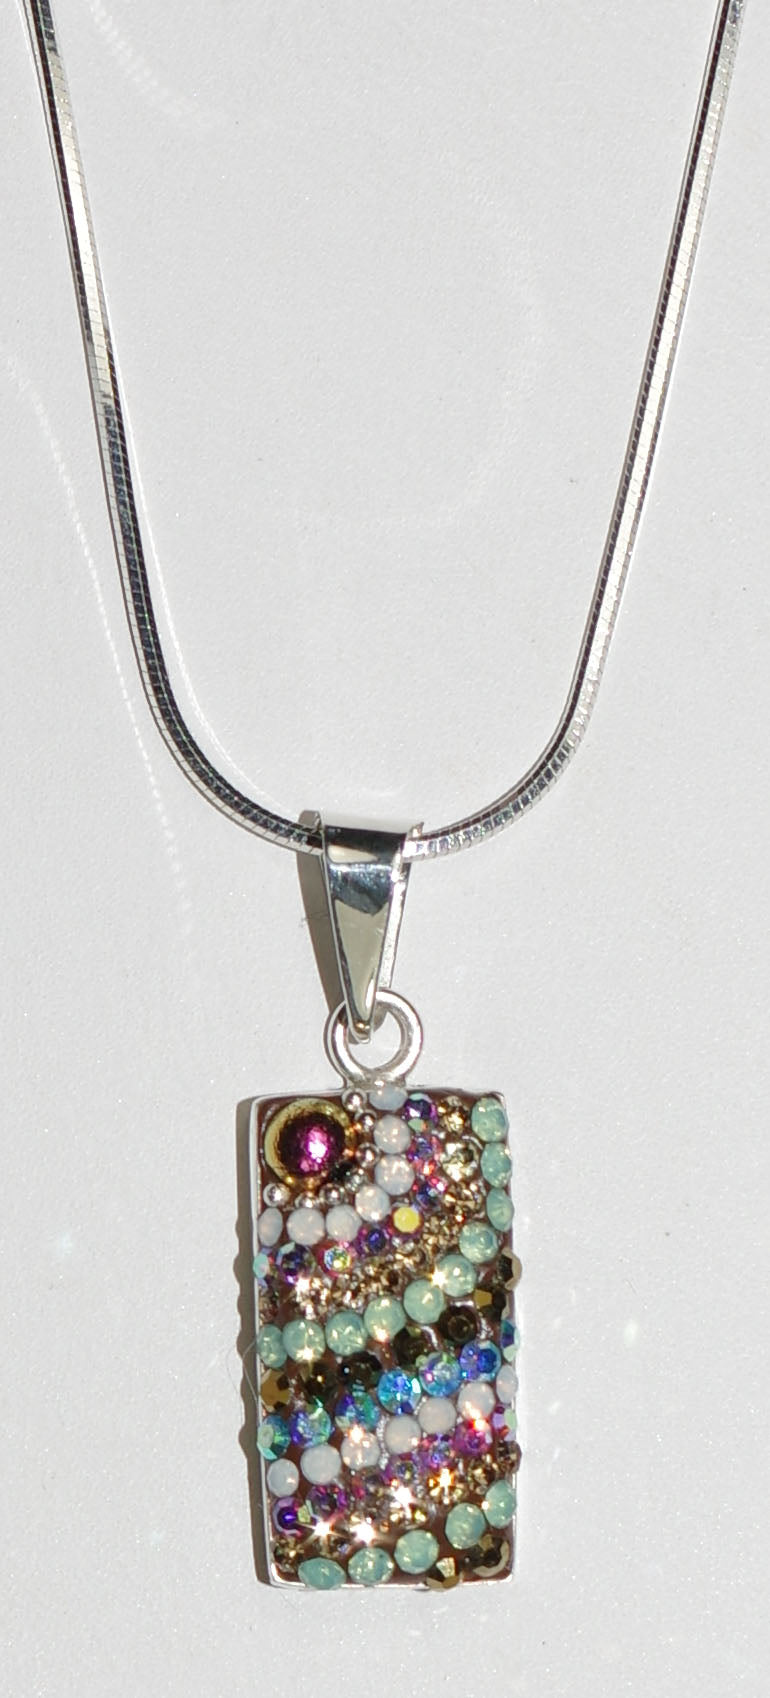 "MOSAICO PENDANT PP-8548-J: multi color Austrian crystals in 3/4"" solid silver pendant, 18-20 inch adjustable silver chain"